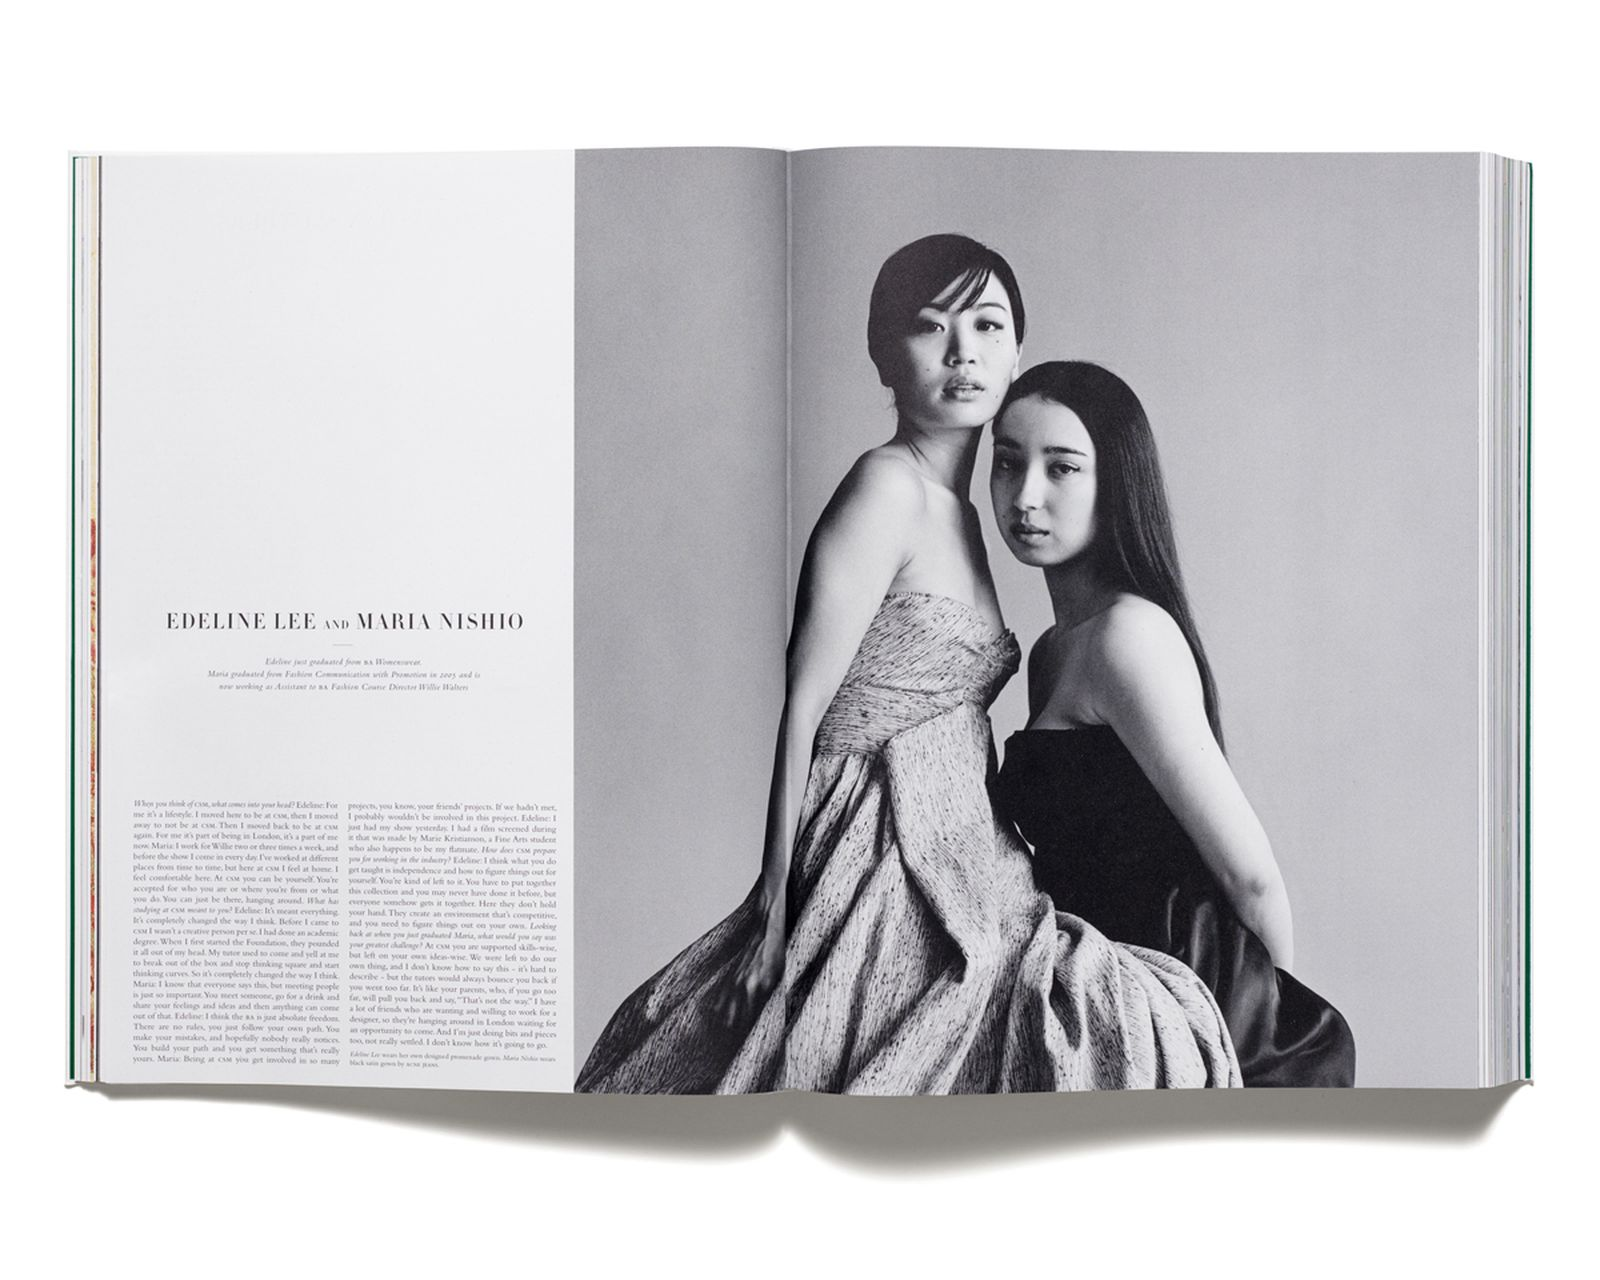 MASTERCLASS - Edeline Lee and Maria Nishio photographed by Snowdon for 'Acne Paper' issue 3, 2006.